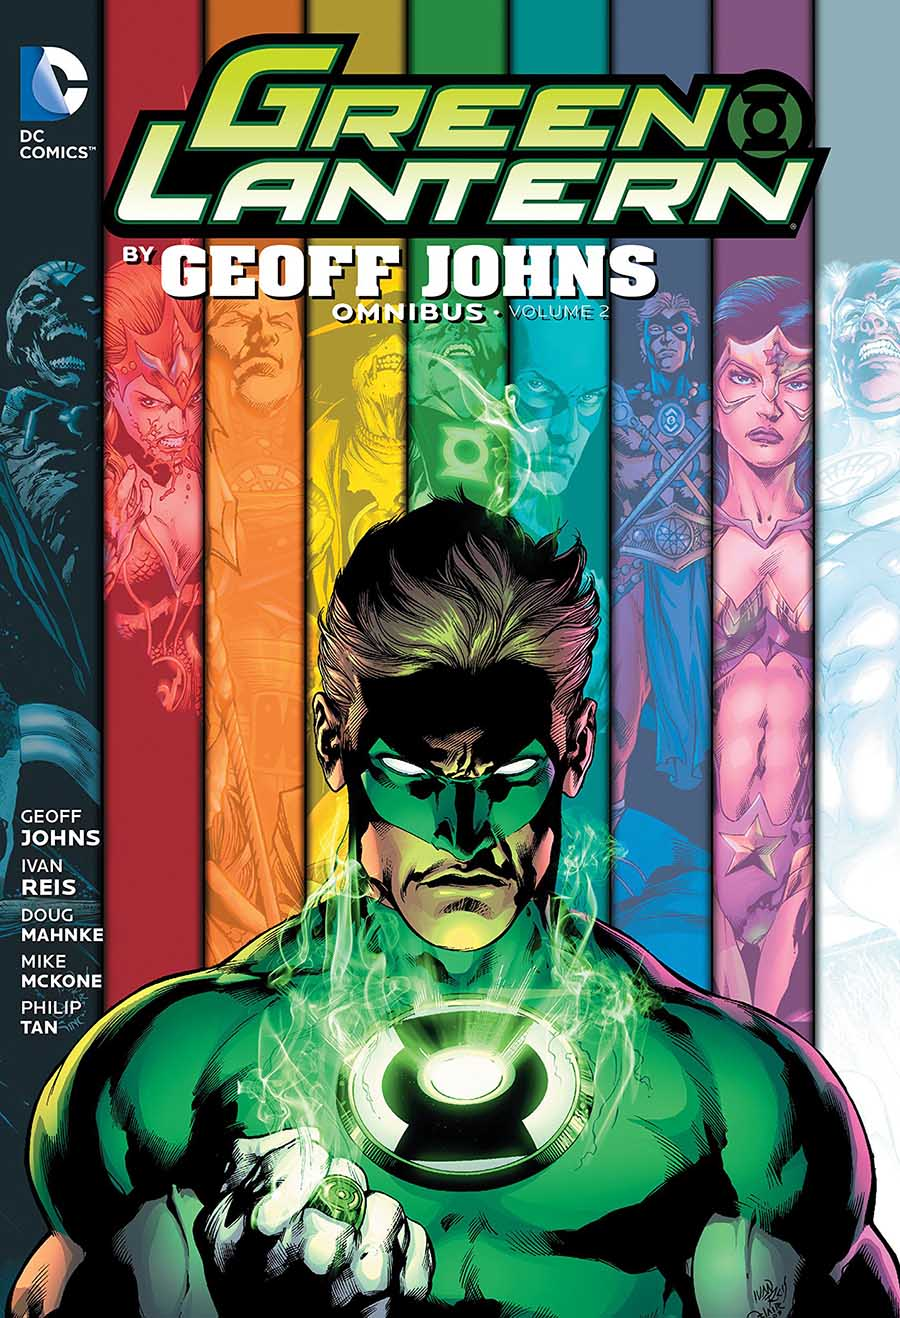 Green Lantern (Geoff Johns)